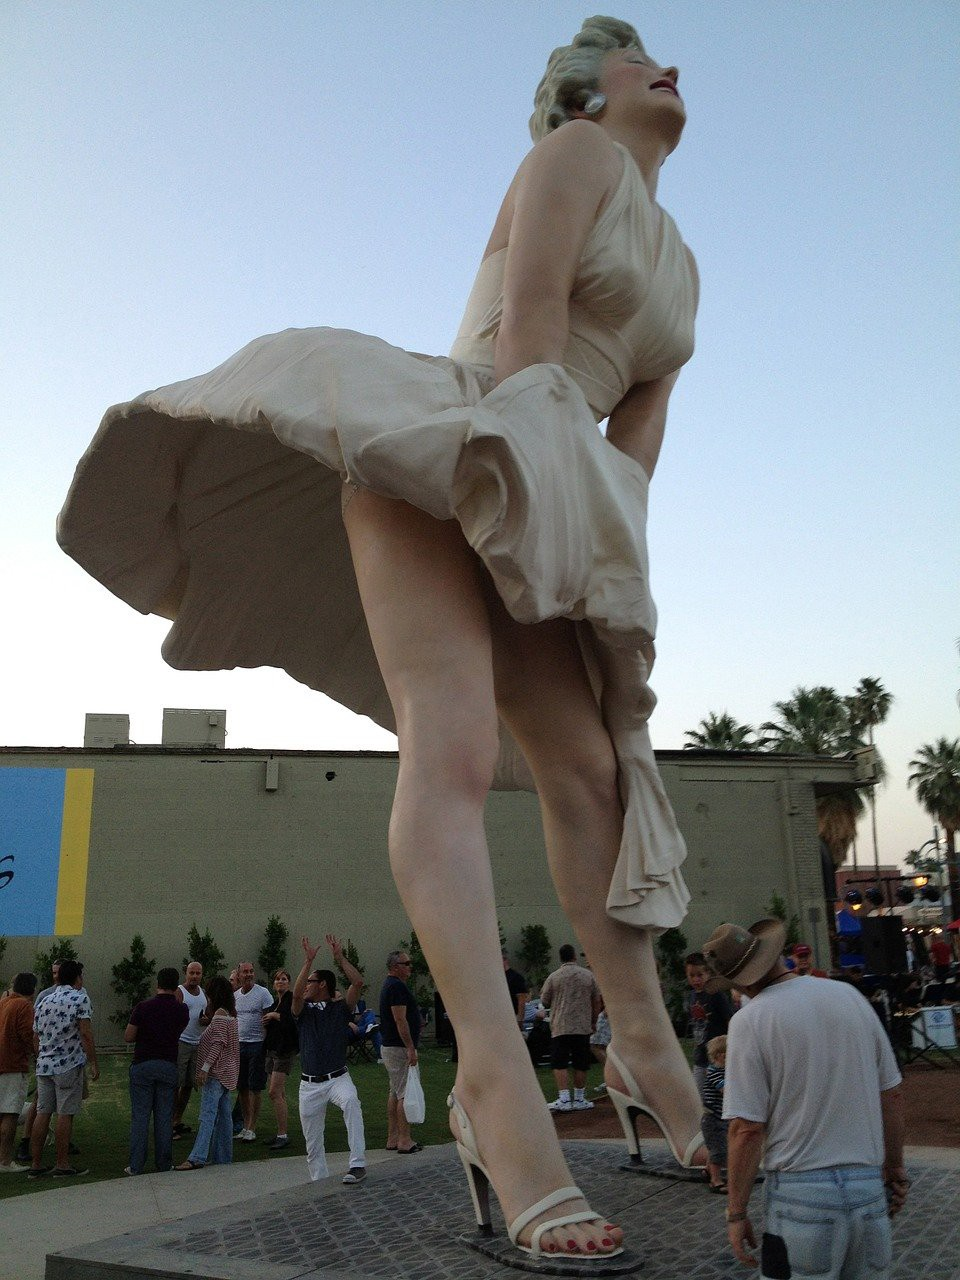 The statue of 'Marilyn Monroe on the subway grate' in Chicago, designed by Seward Johnson